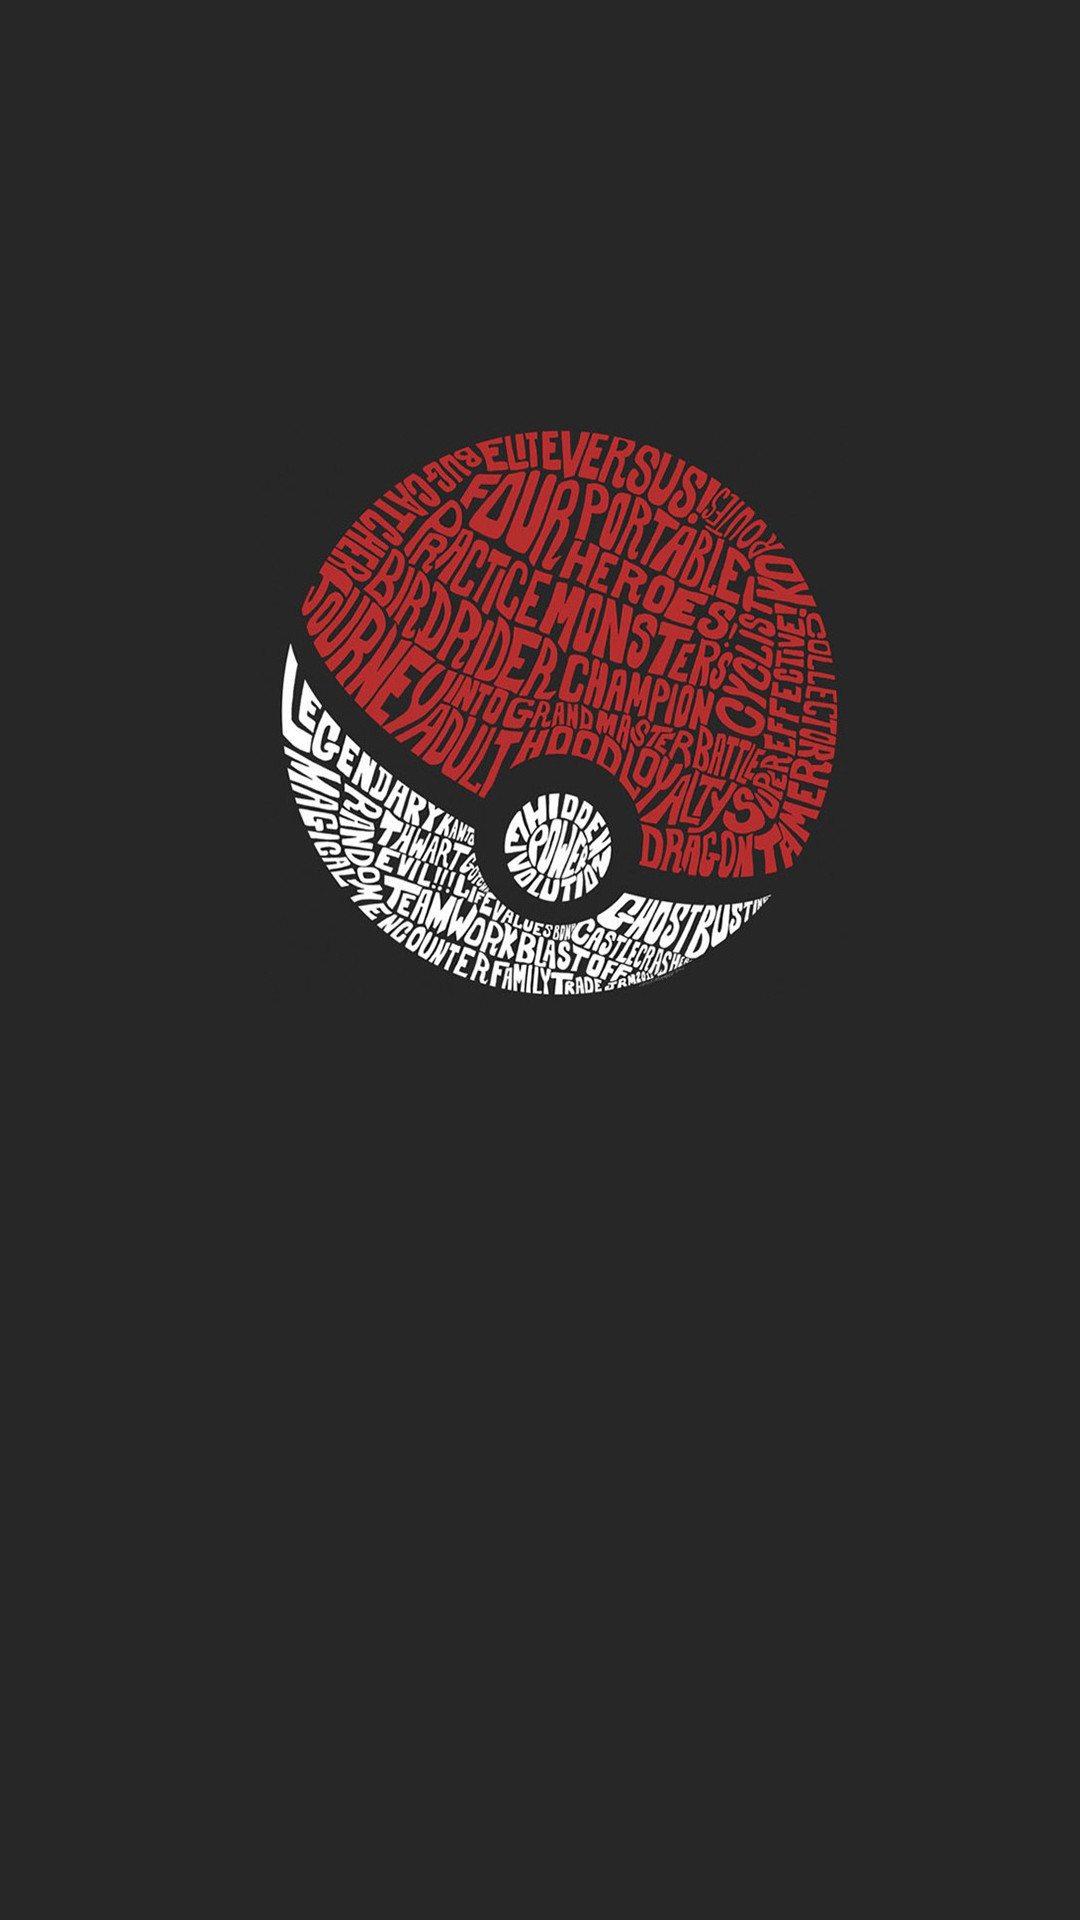 1080x1920 Minimal walls for pokemon fans. Collected and edited by me. Share and enjoy  ;)